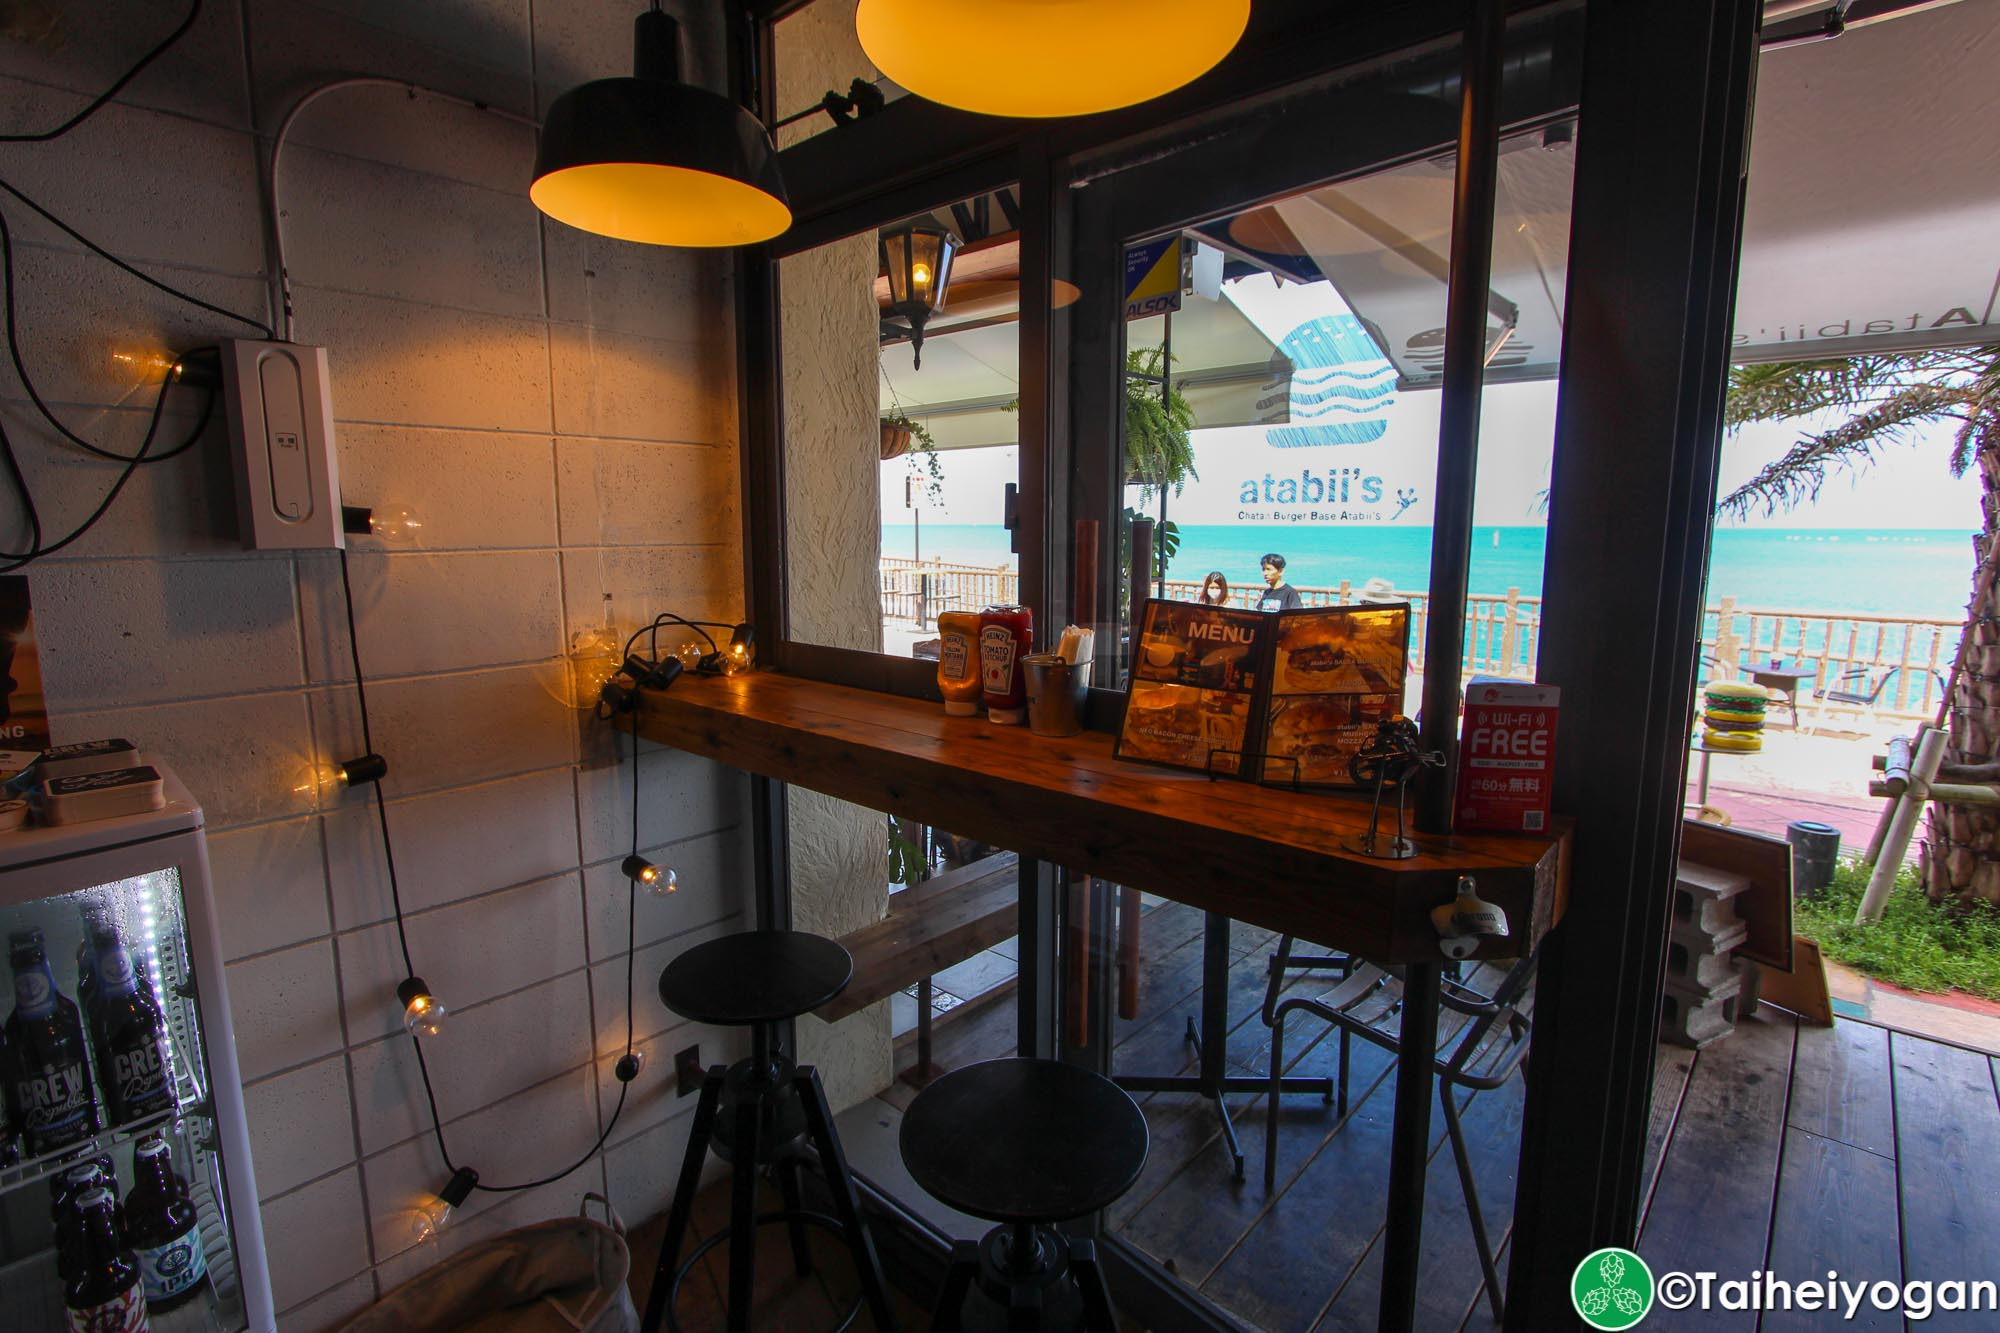 Chatan Burger Base Atabii's - Interior